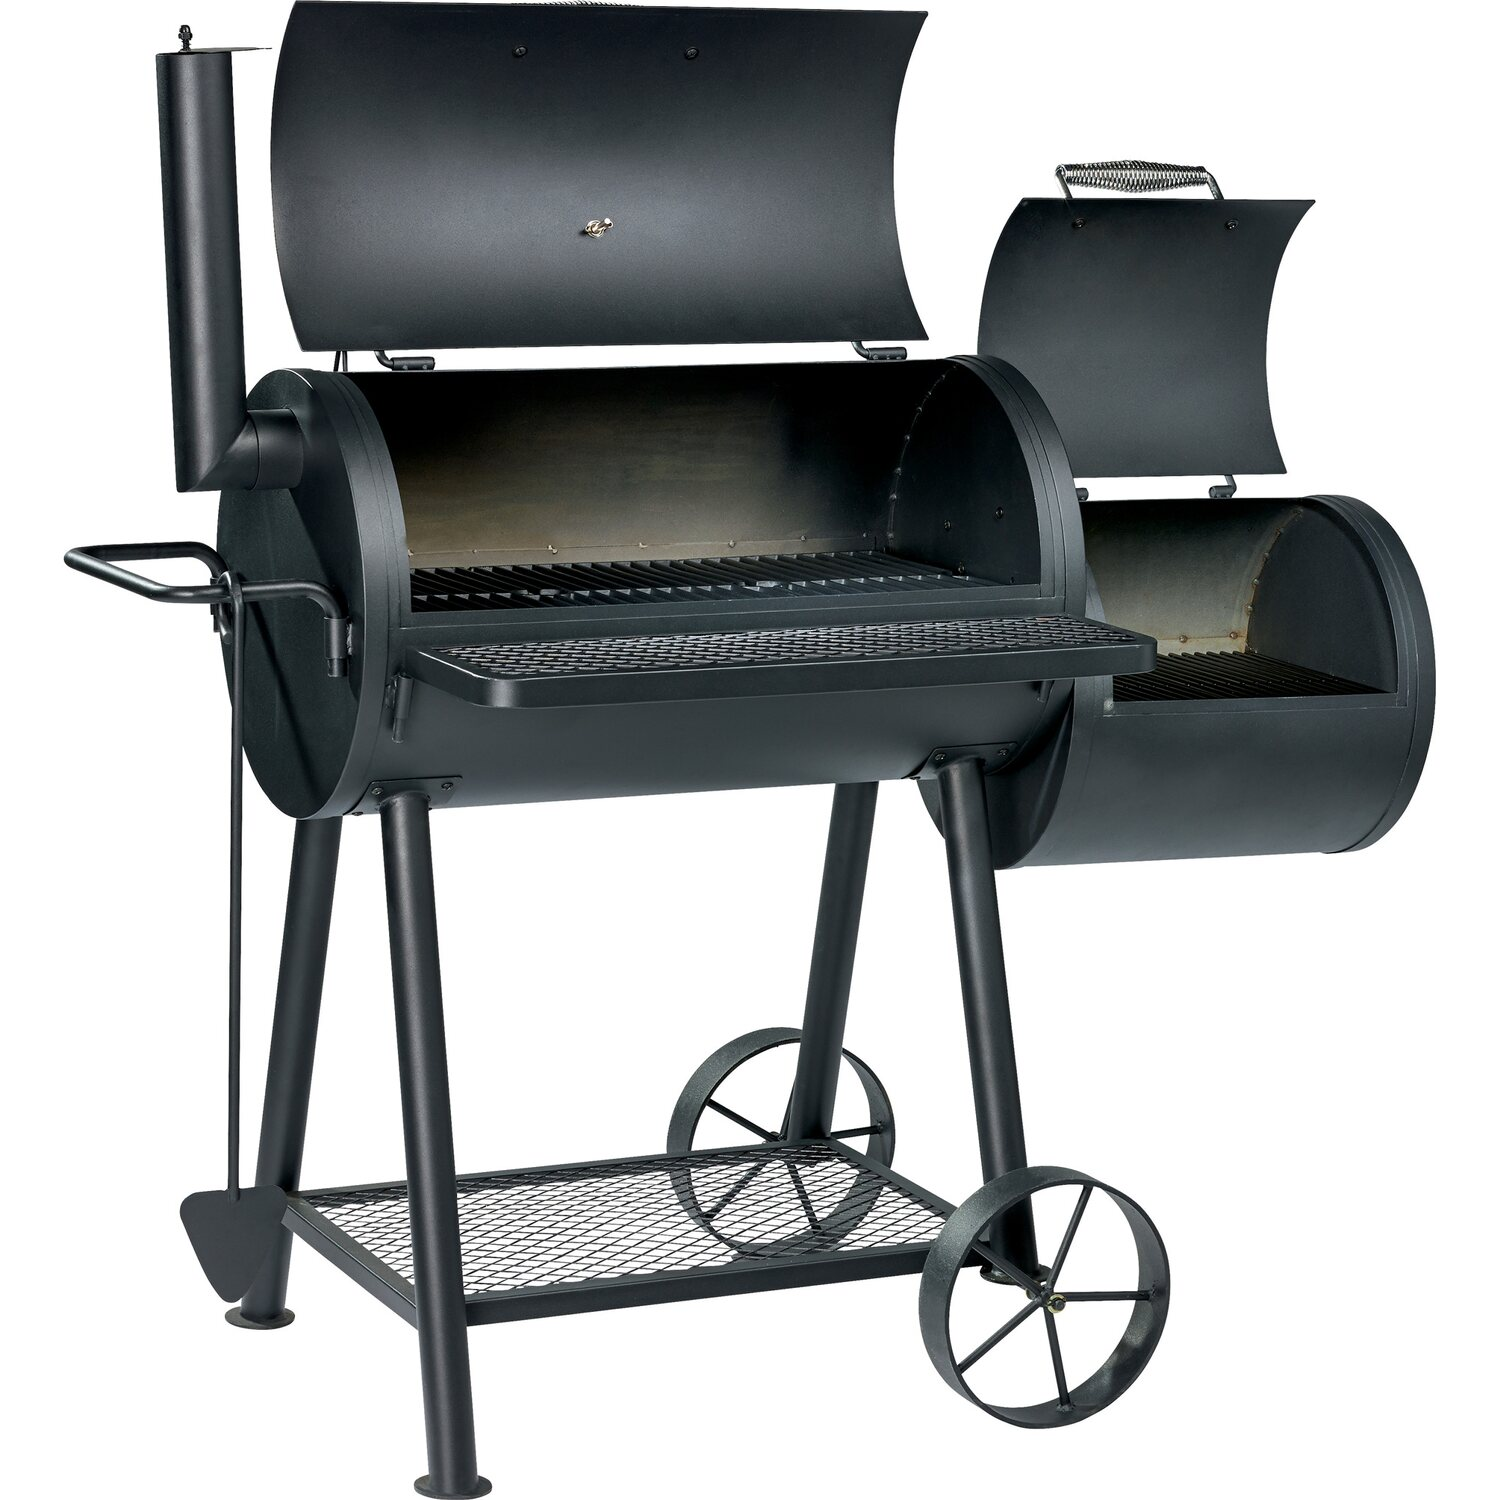 jamestown barbecue a carbonella smoker charlton acquista da obi. Black Bedroom Furniture Sets. Home Design Ideas